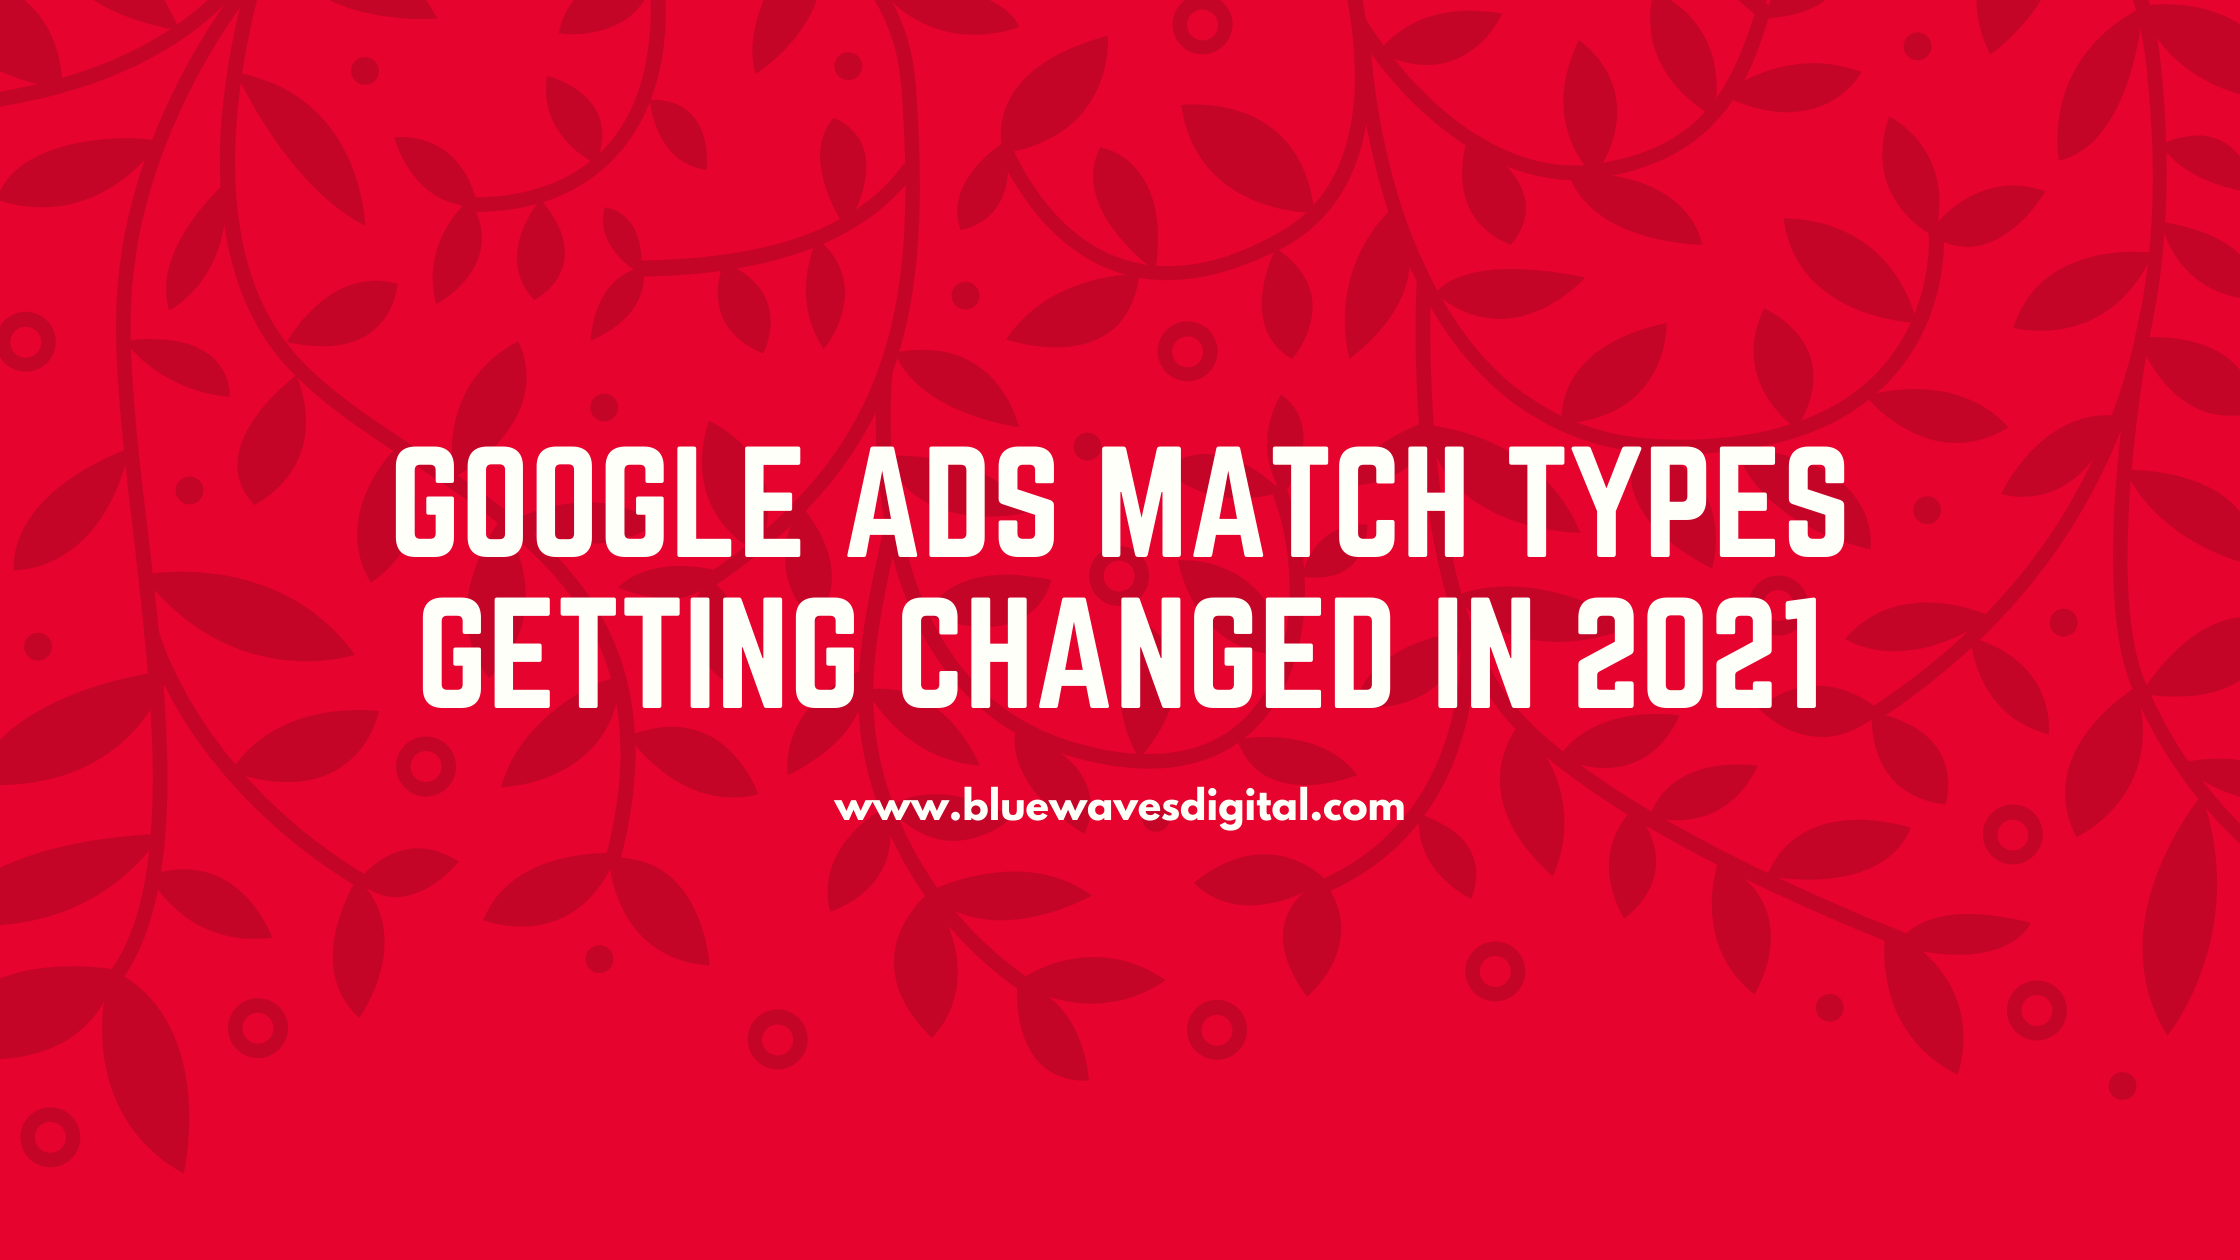 Google Ads Match Types Getting Changed in 2021